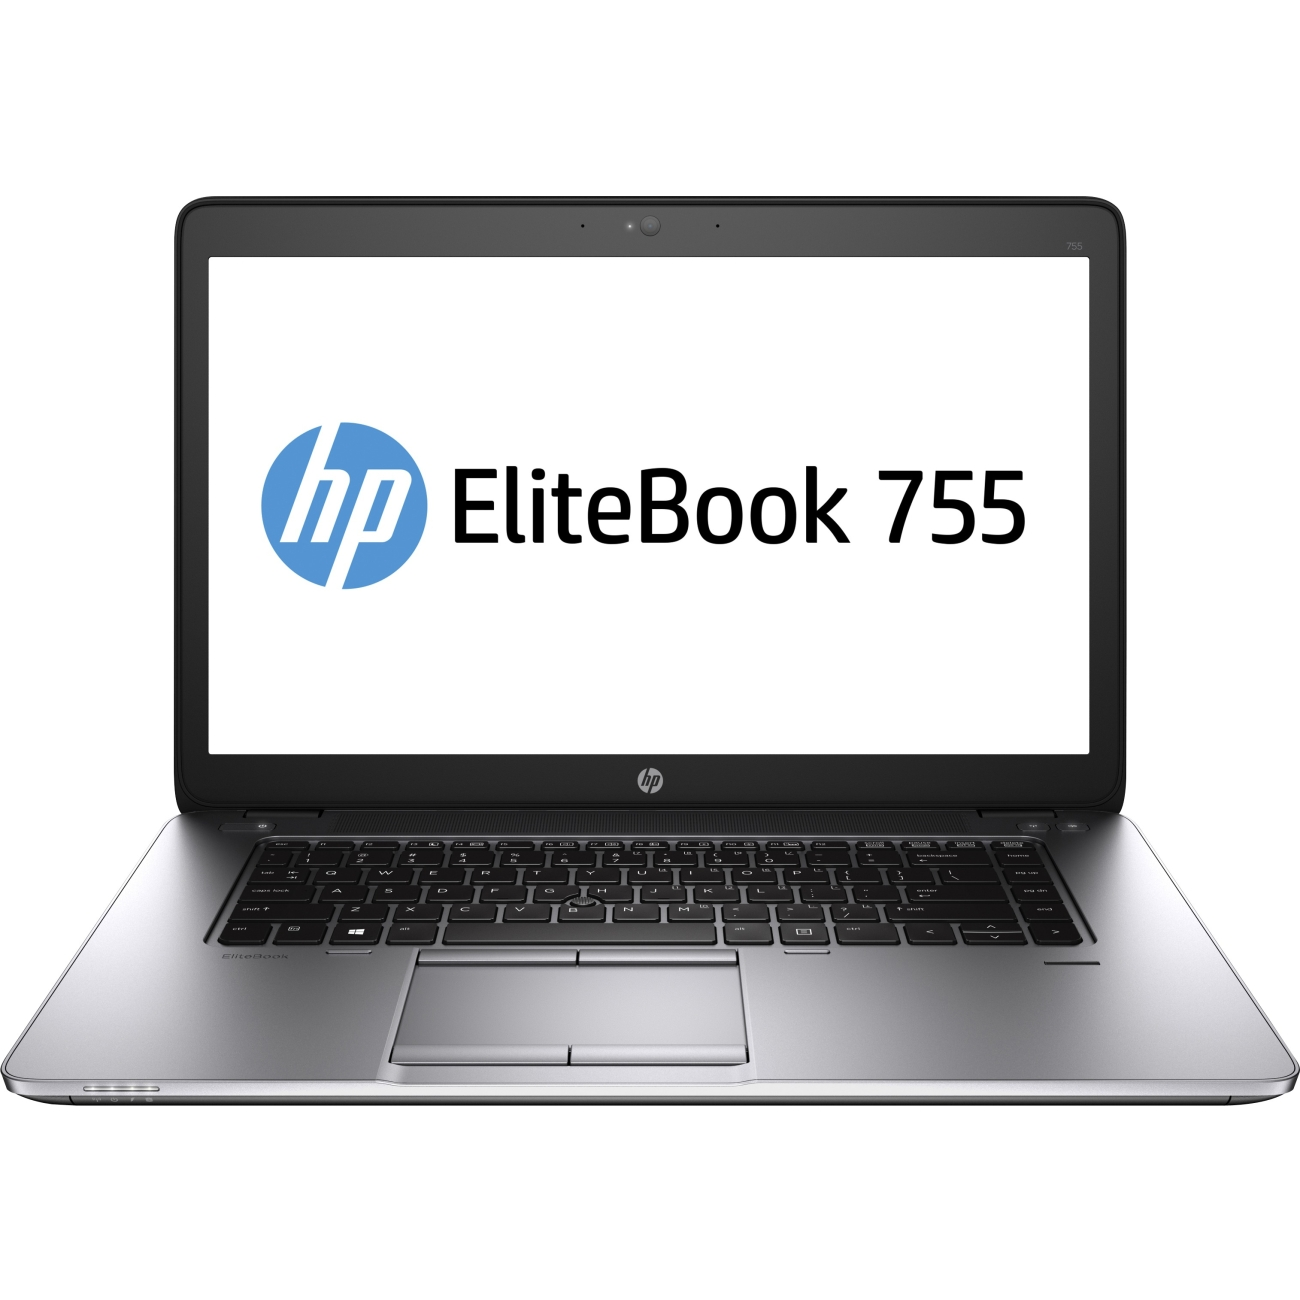 "Hp Elitebook 755 G2 15.6"" Notebook - Amd A-series A10 Pro-7350b Quad-core [4 Core] 2.10 Ghz - 8 Gb Ddr3l Sdram Ram - 180 Gb Ssd - Amd Radeon R6 Graphics Ddr3l Sdram - Windows 7 (p0c16ut-aba)"